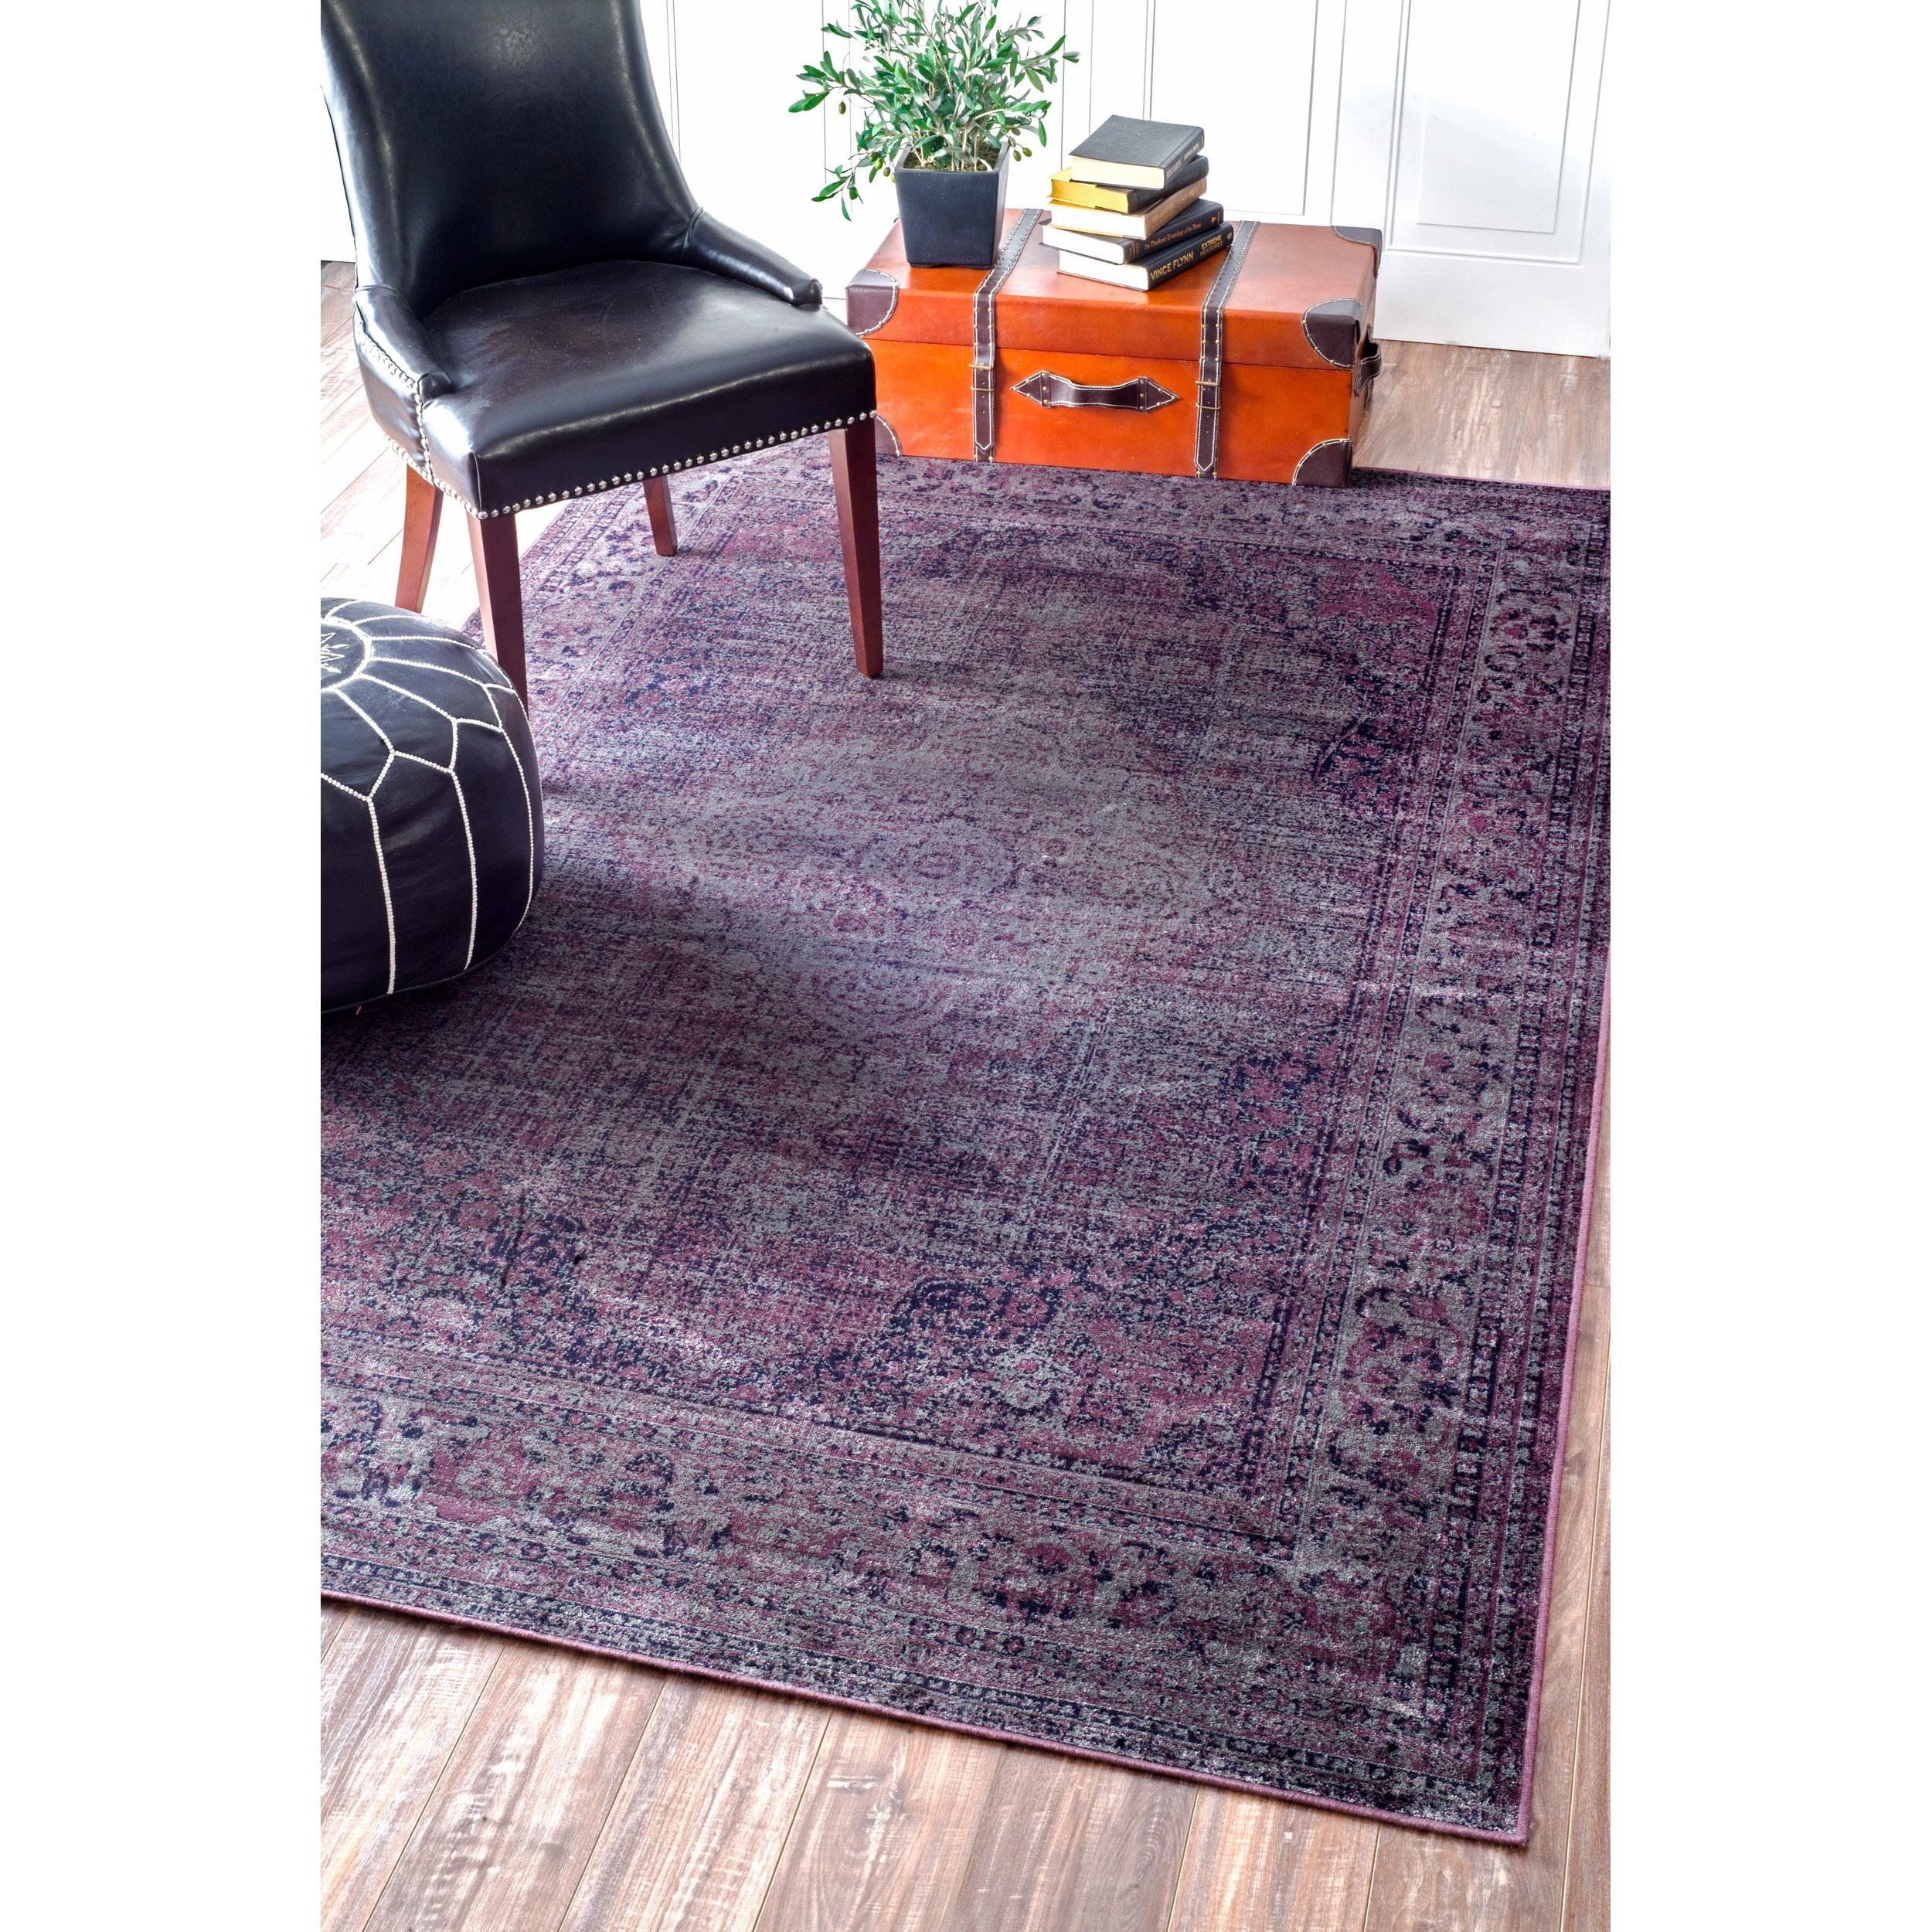 Apartments · This Vintage Style Viscose Rug ...